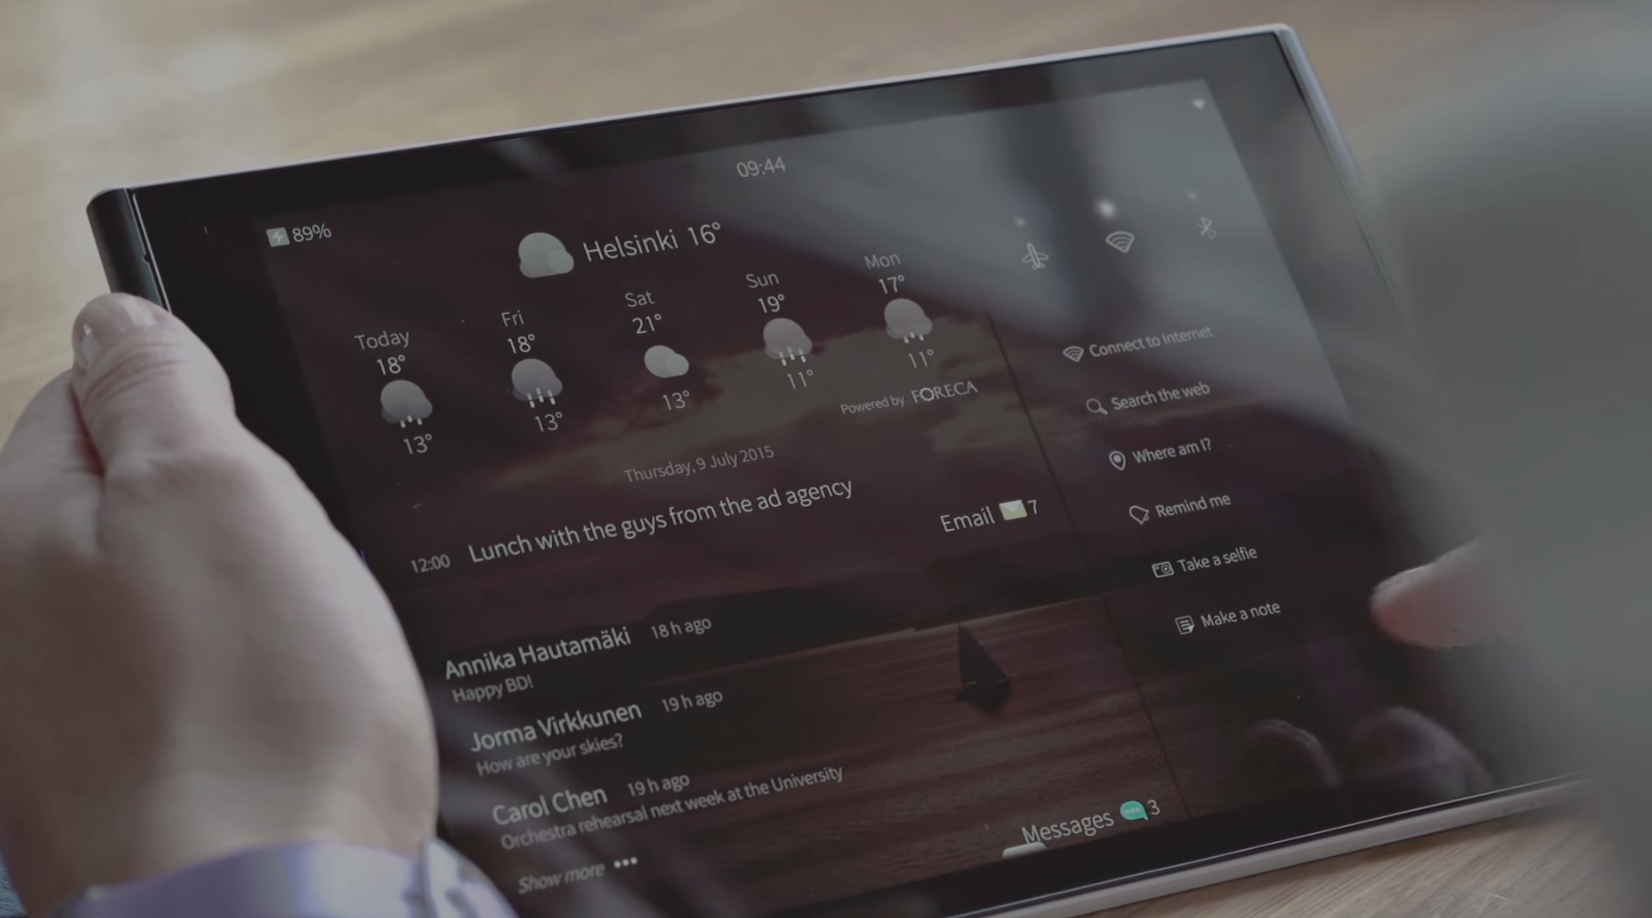 Jolla's Sailfish OS hits 2.0, rolling out to existing users soon